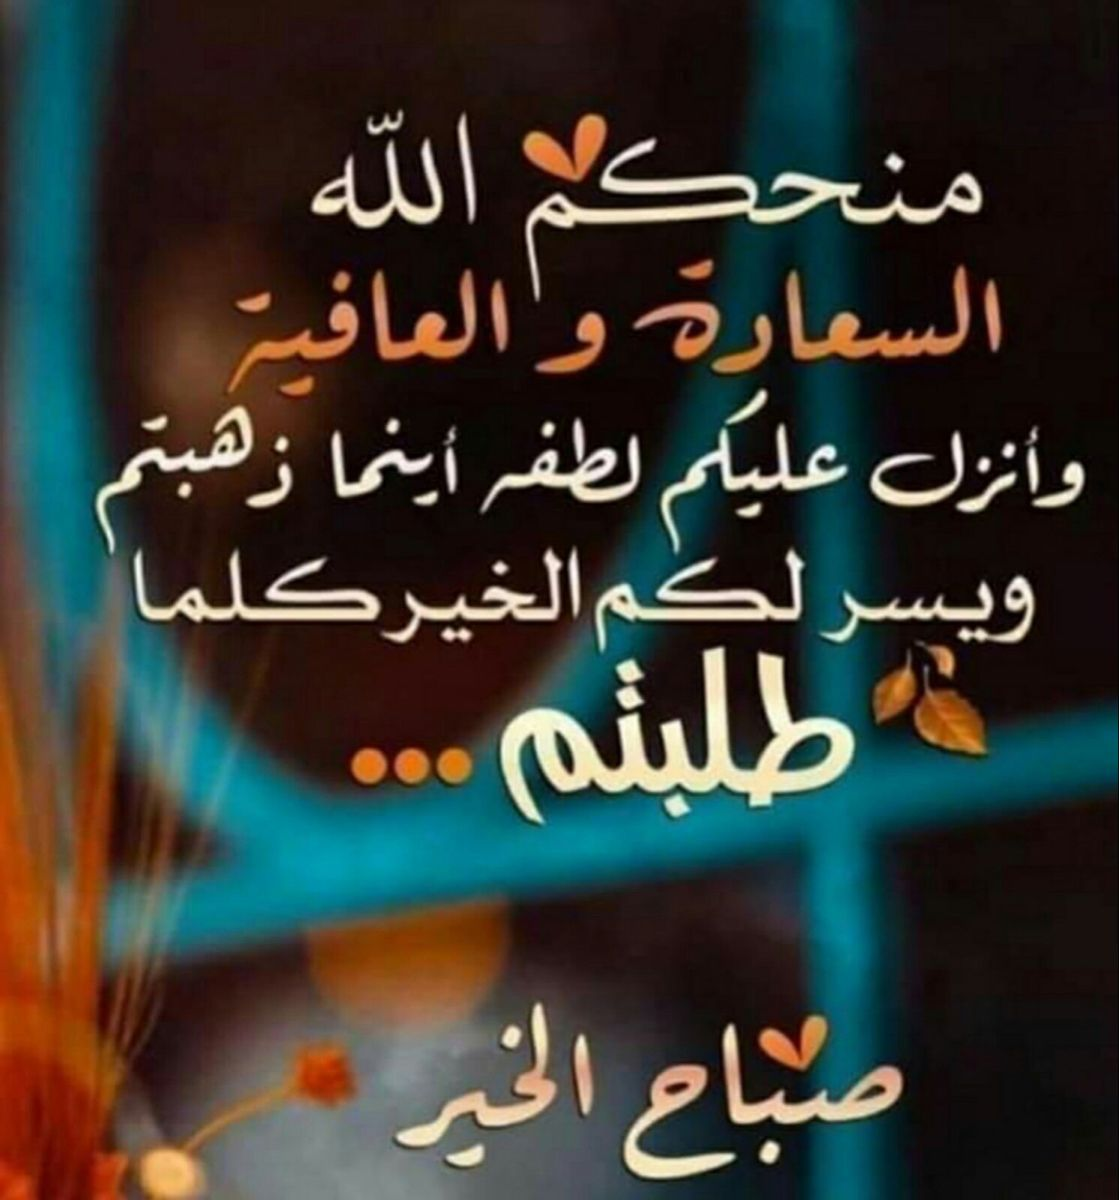 Pin By Aldahan On صلوات على محمد واله و صباحياة Beautiful Morning Messages Good Morning Images Good Morning Beautiful Images